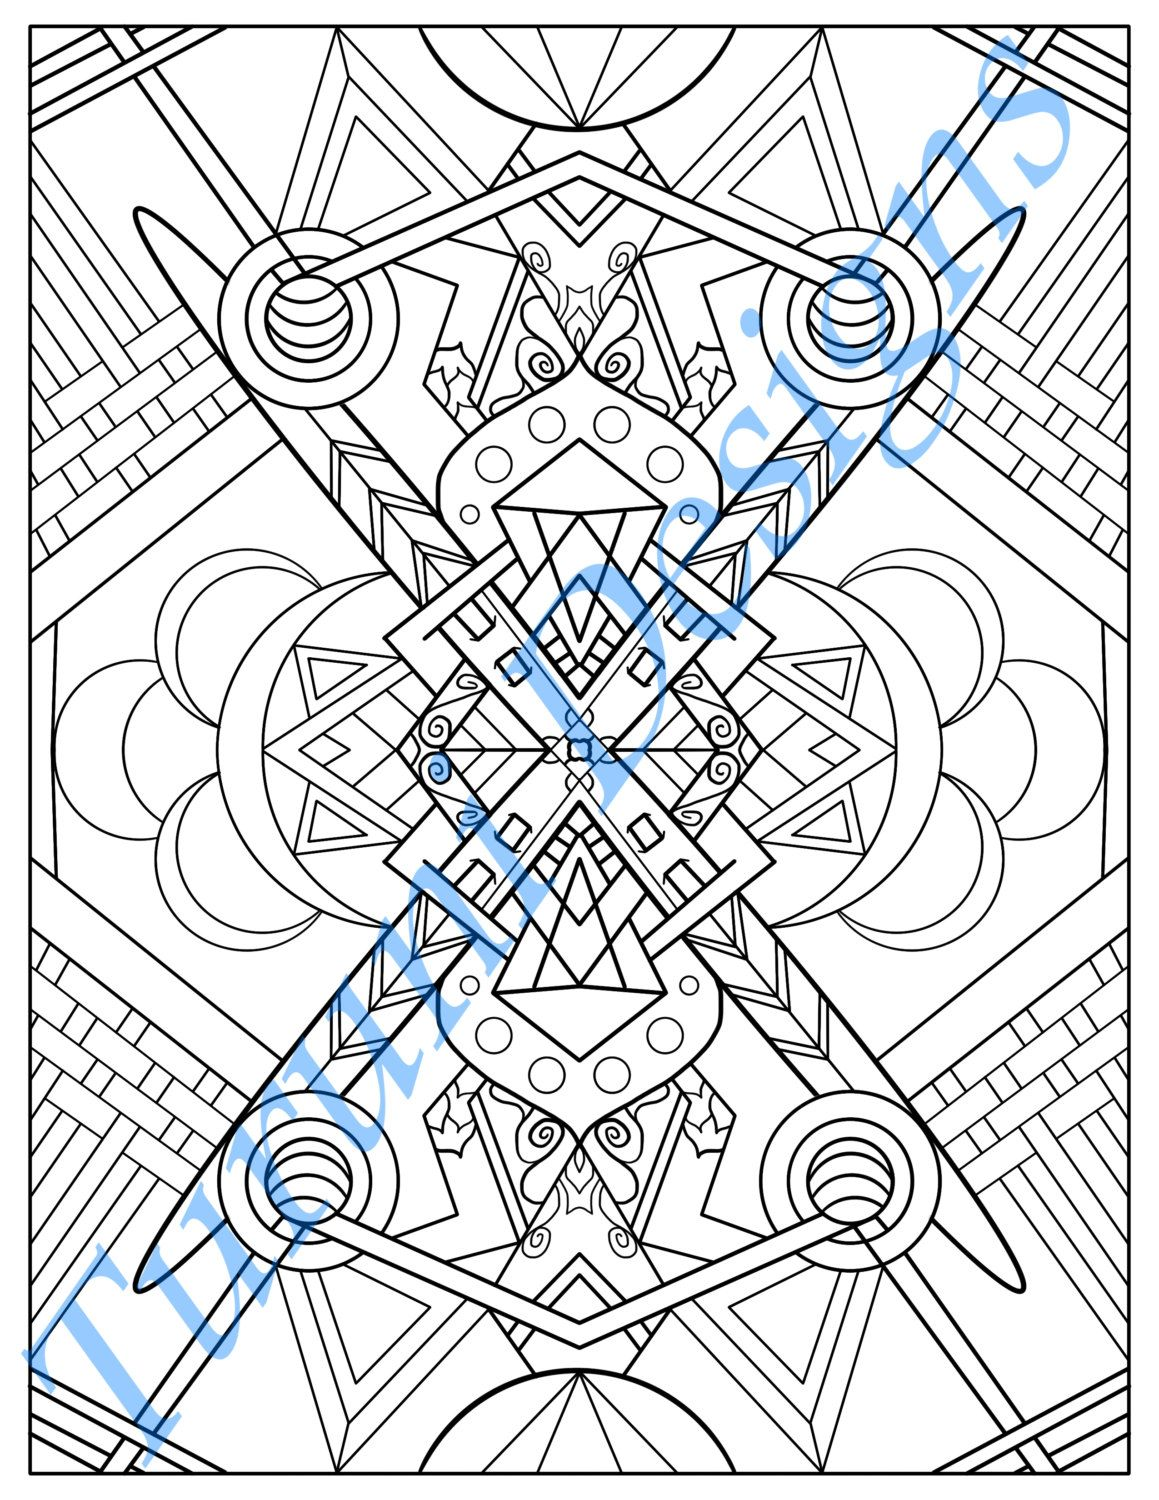 1159x1500 Tribal Inspired Printable Adult Coloring Page, Basketweave